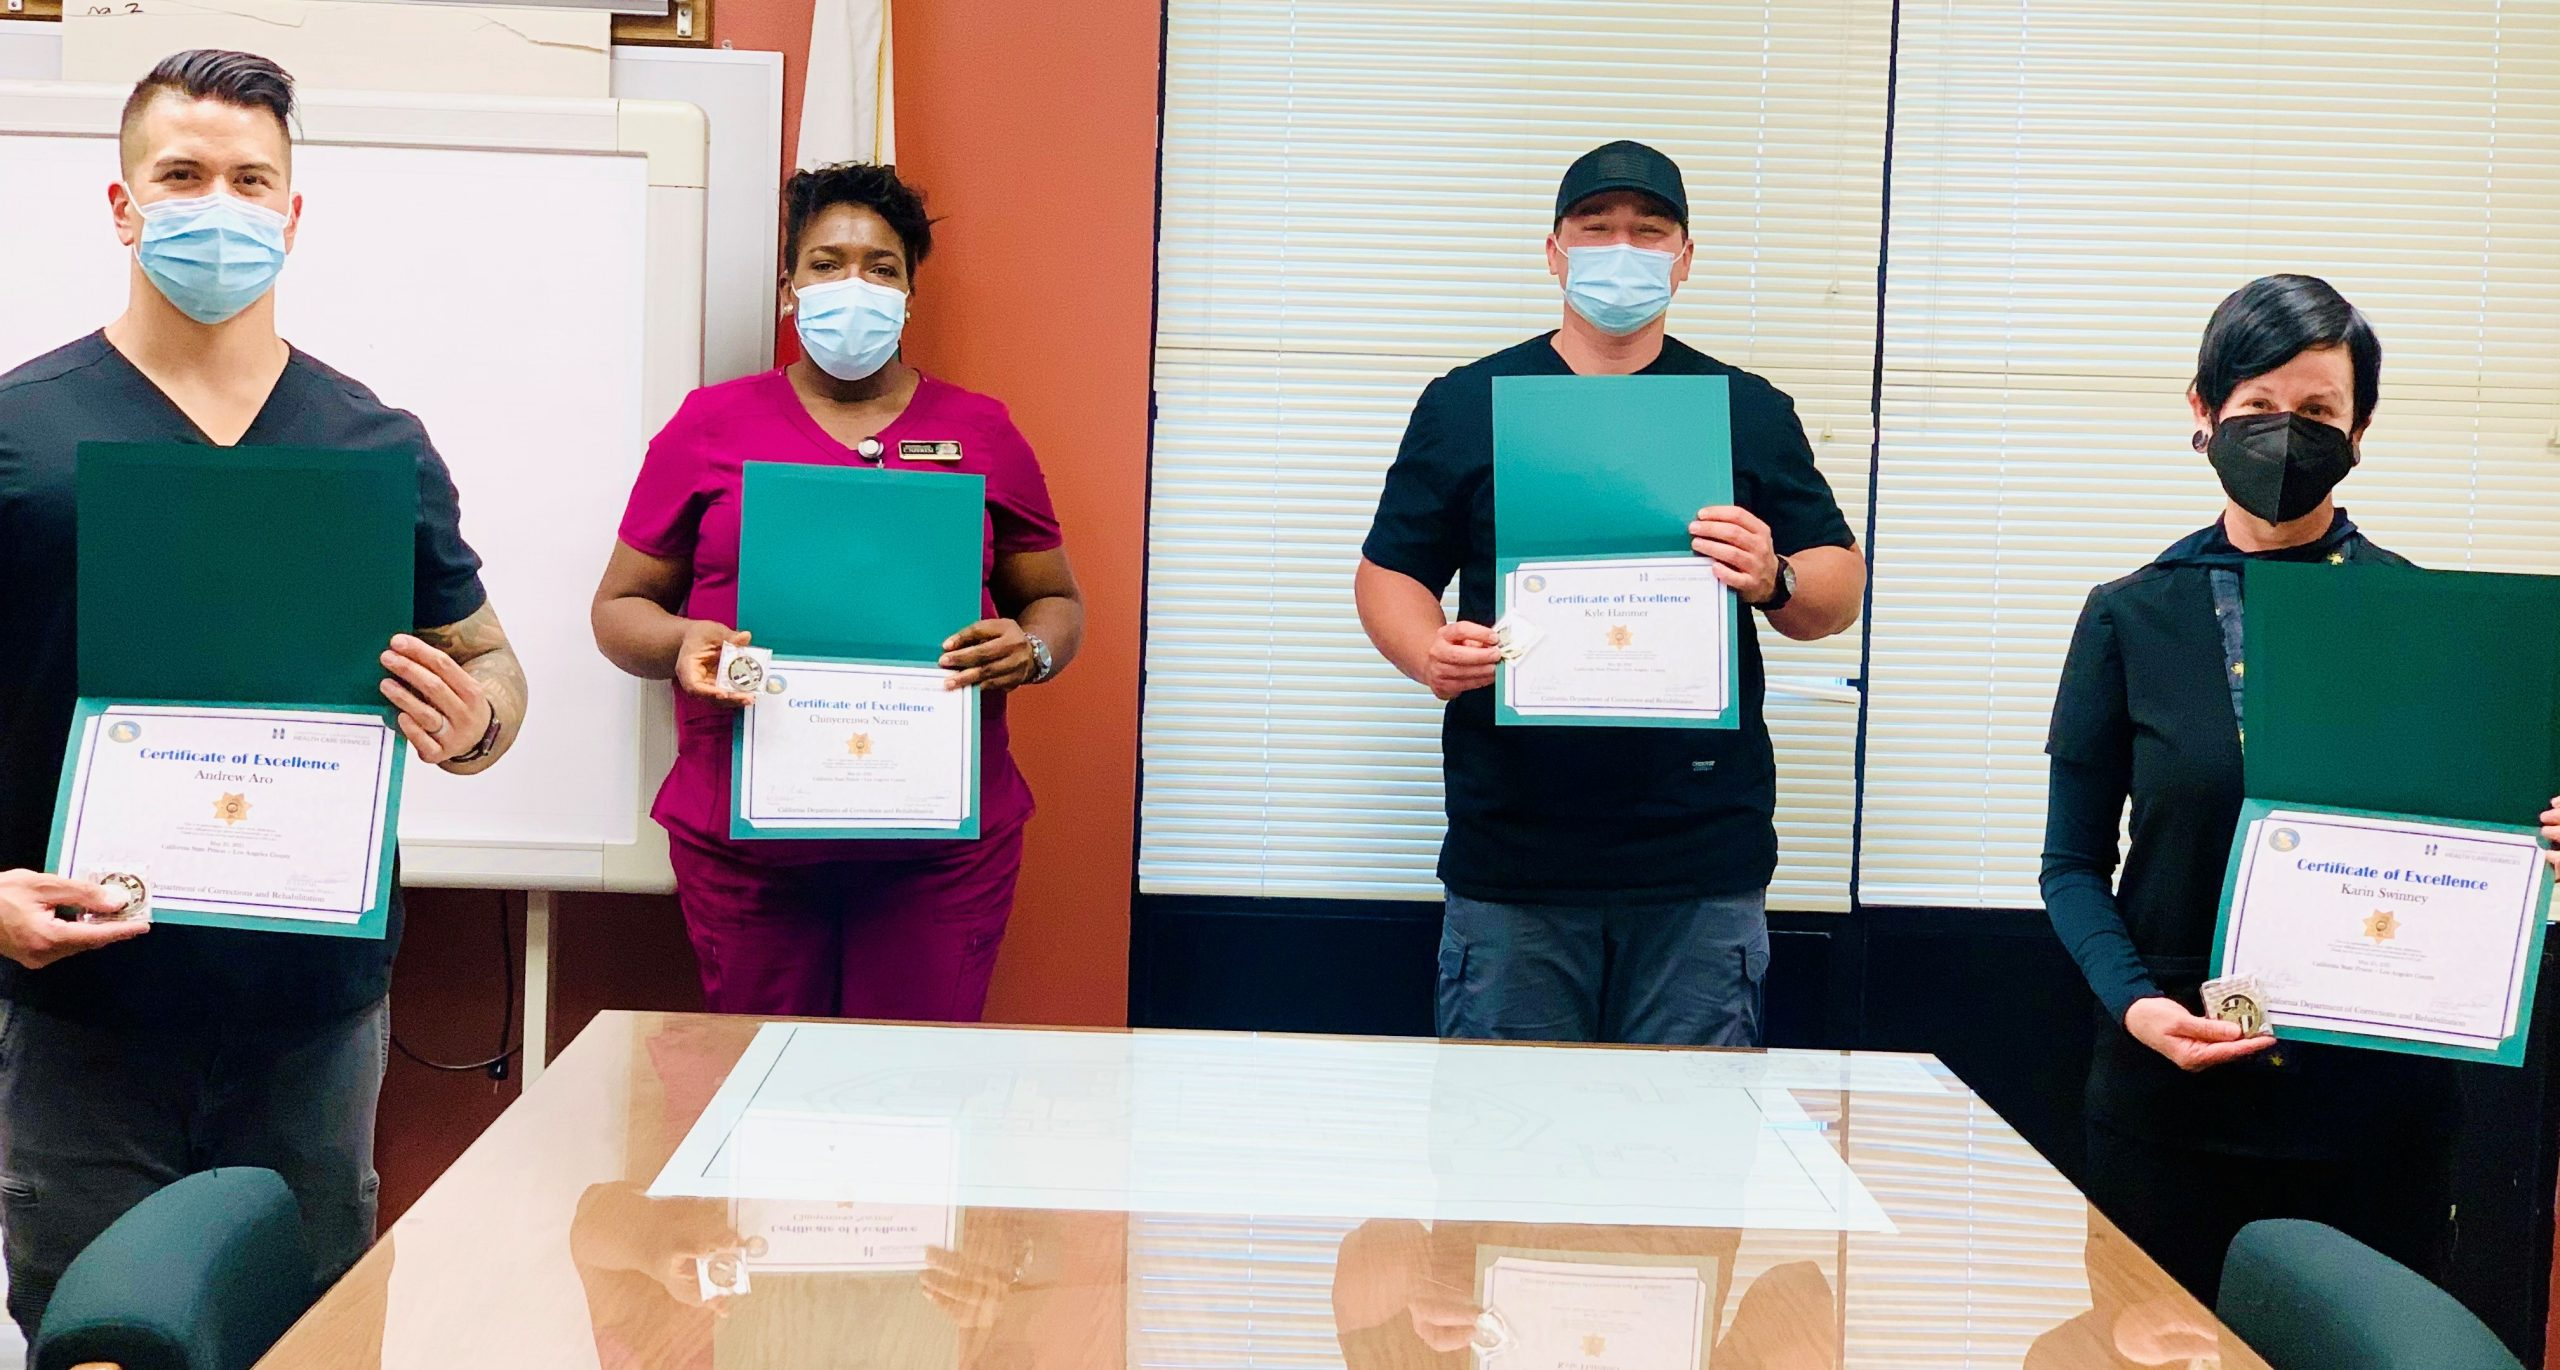 Nursing staff with certifications